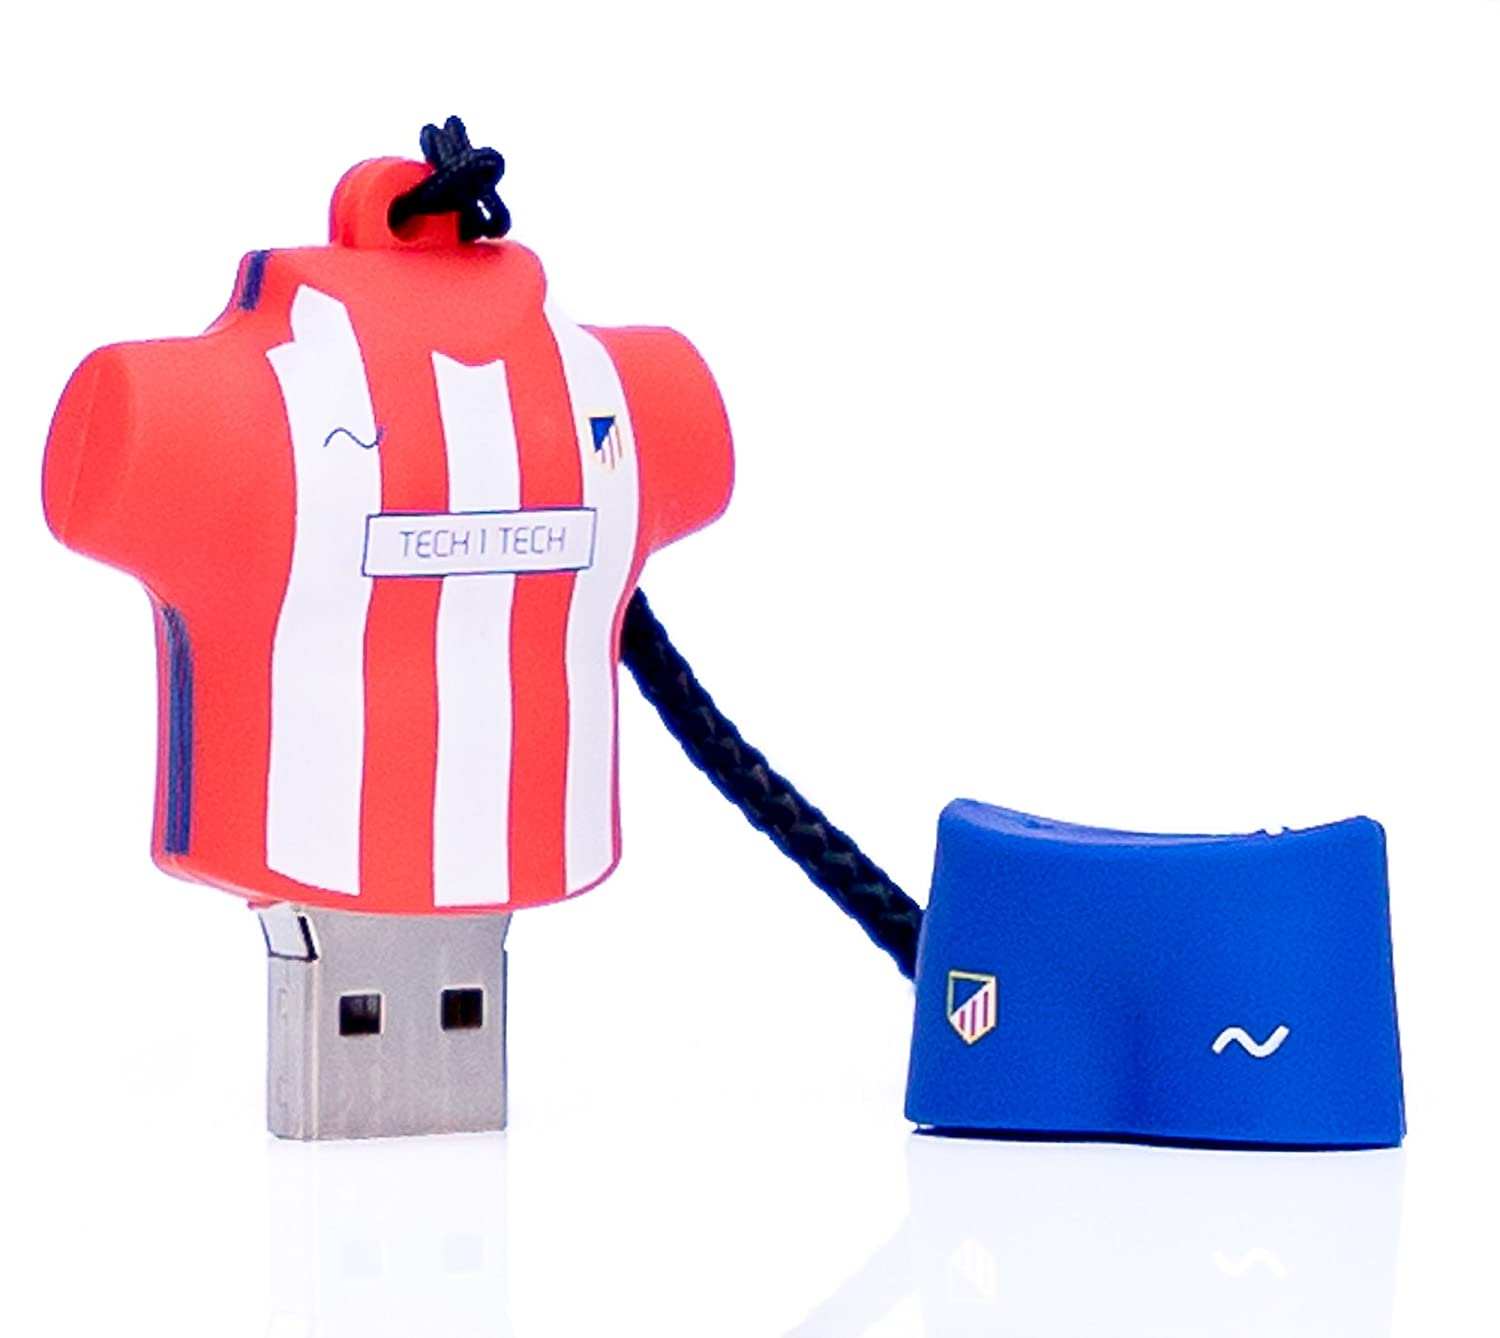 TECH1TECH TEC50236-16 16GB USB 2.0 Type-A Azul, Rojo, Color Blanco ...